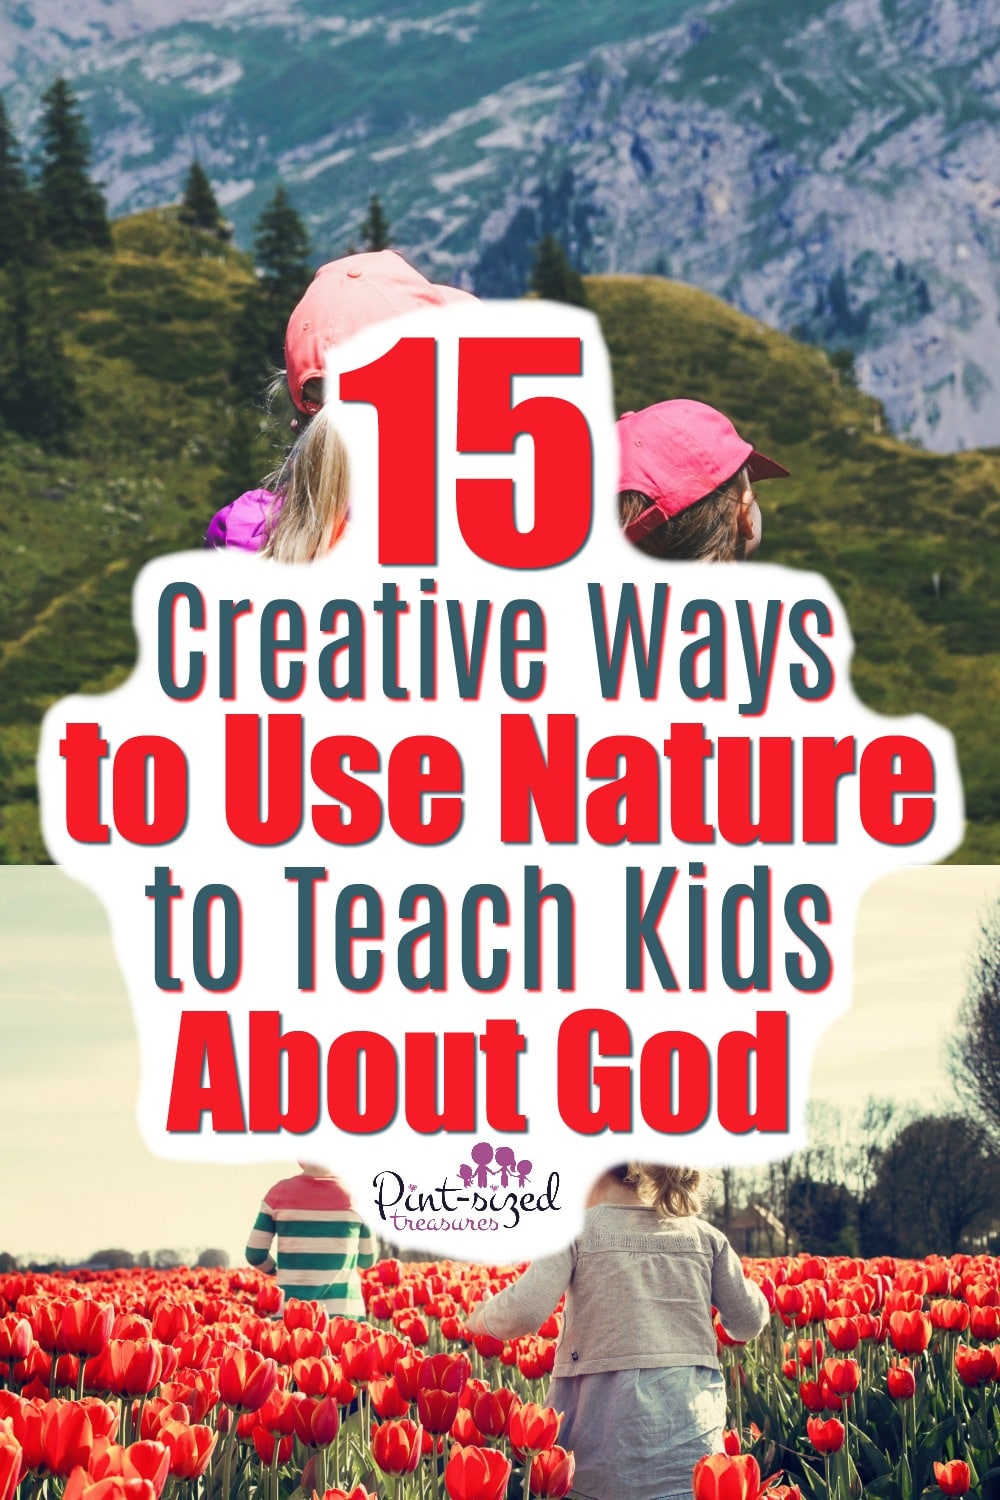 Creative Ways to Teach Kids About God Through Nature